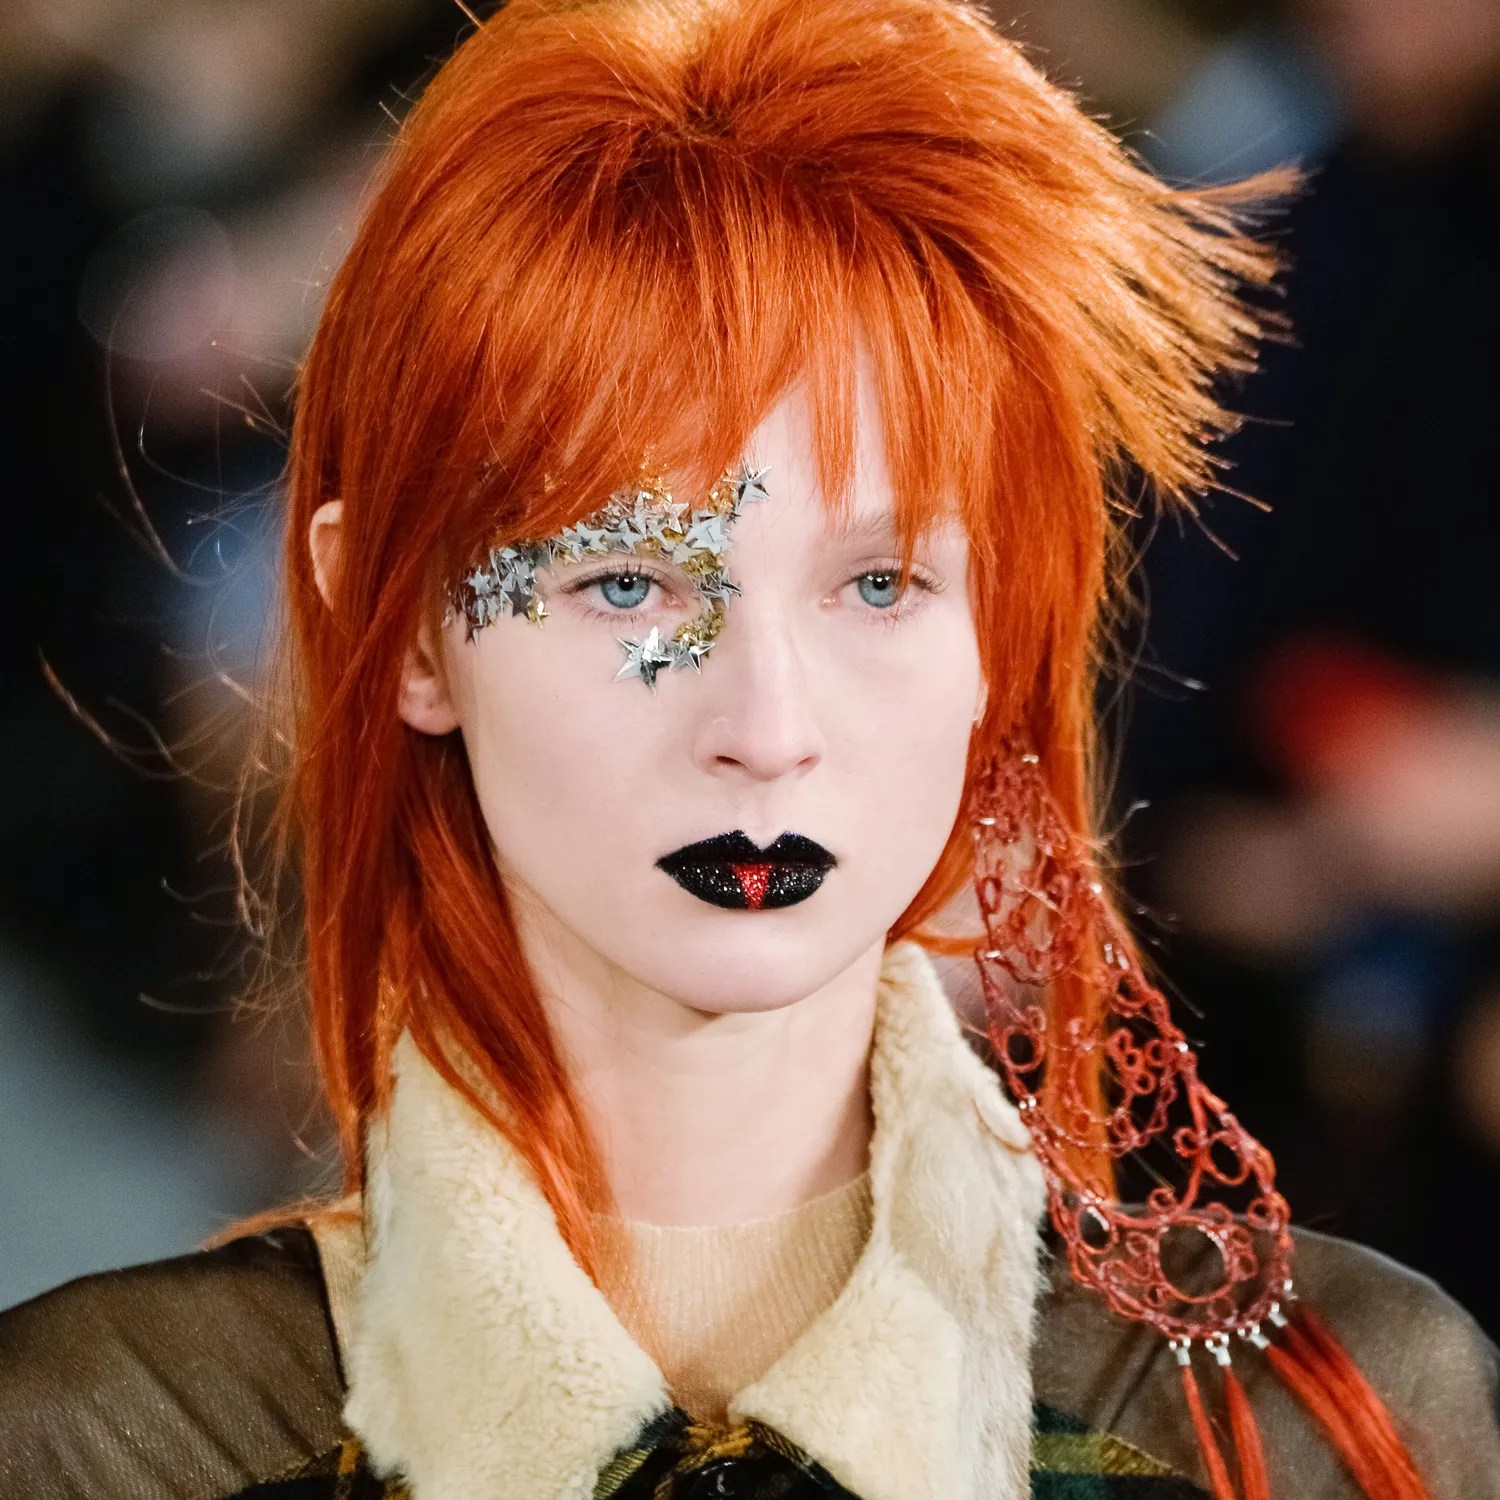 Margiela Paid Homage to David Bowie